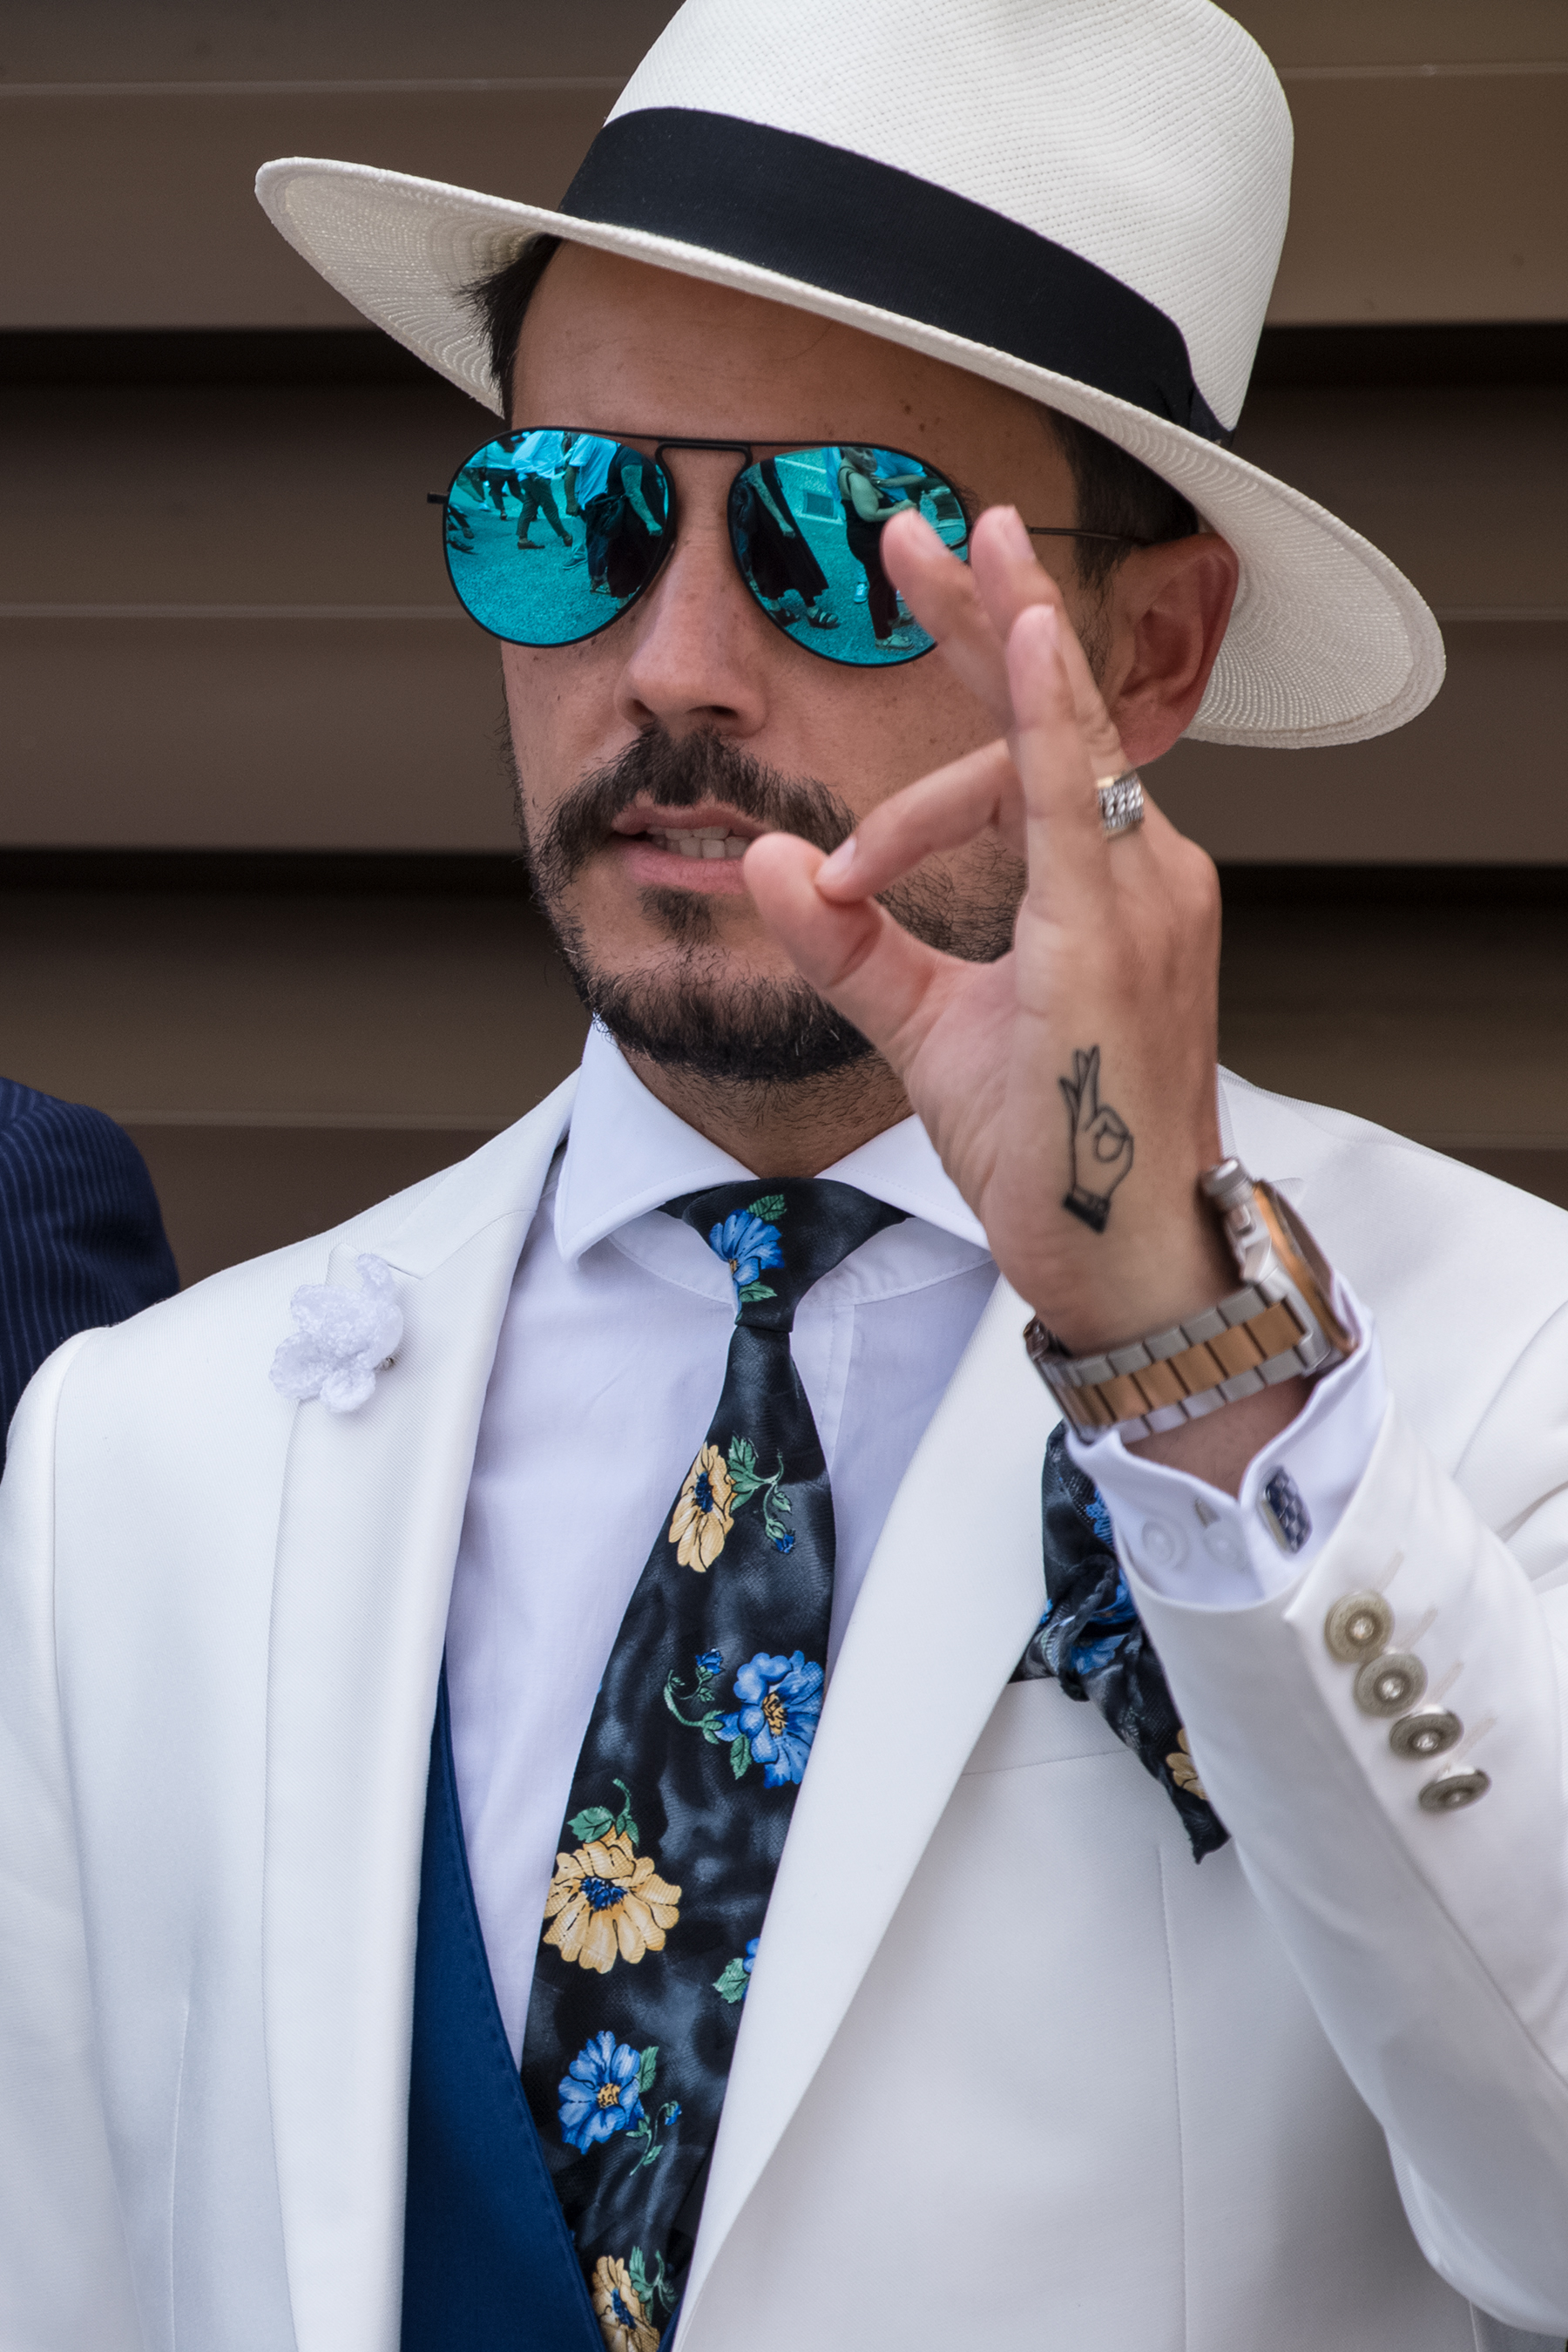 Firenze Pitti Uomo Fashion Week Men's Street Style Spring 2018 by Poli Alexeeva